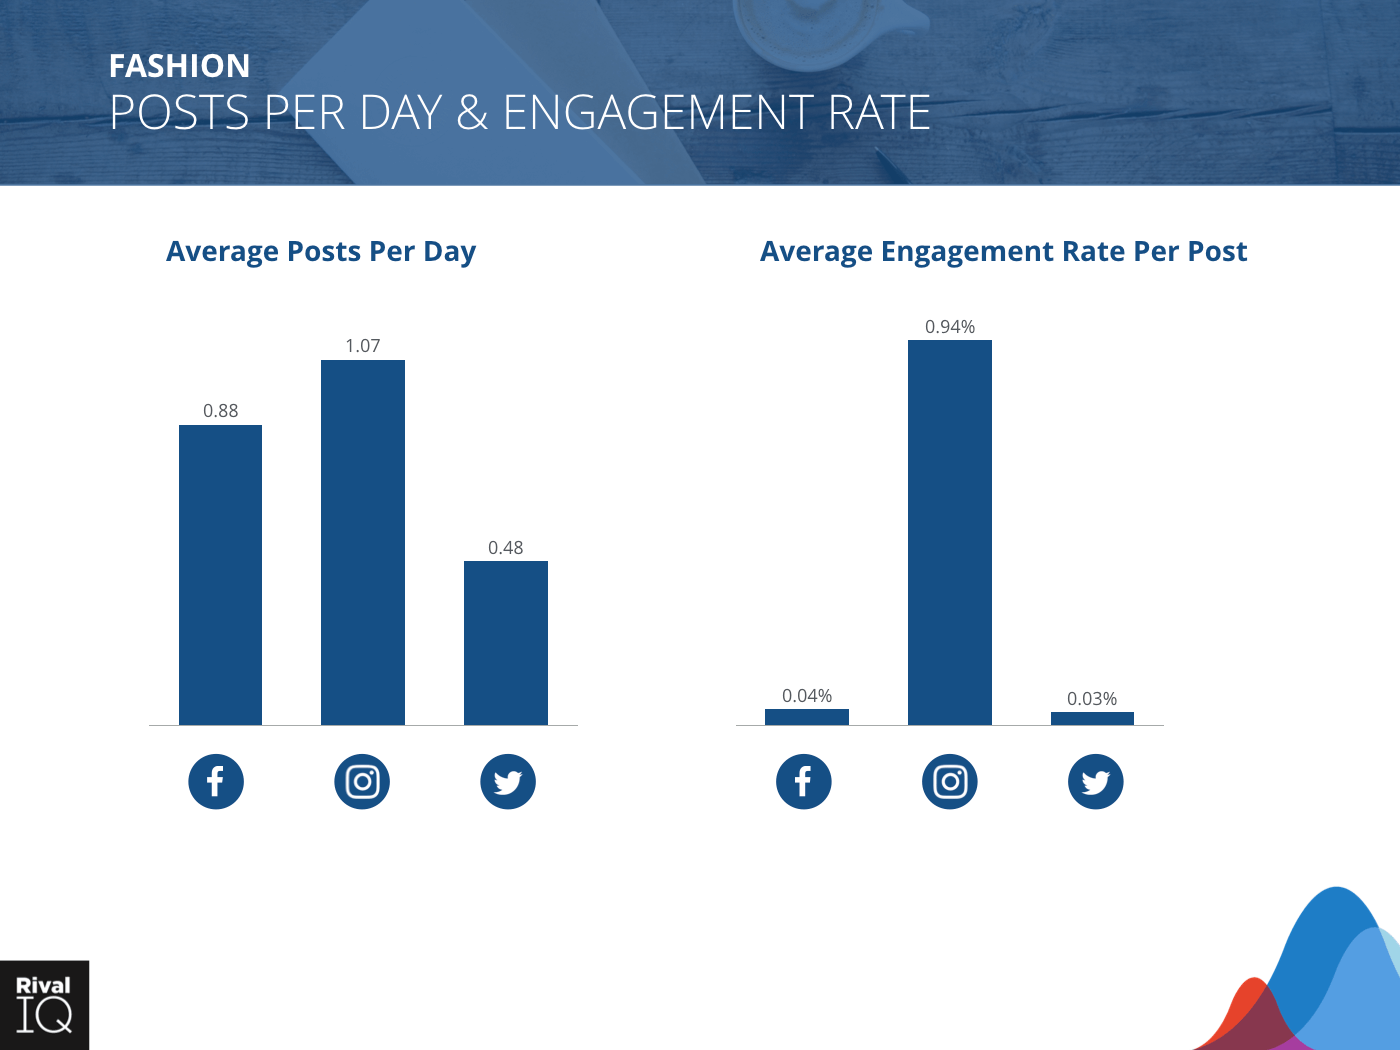 Fashion Industry: Bar graph, average post per day and engagement rate, all channels.